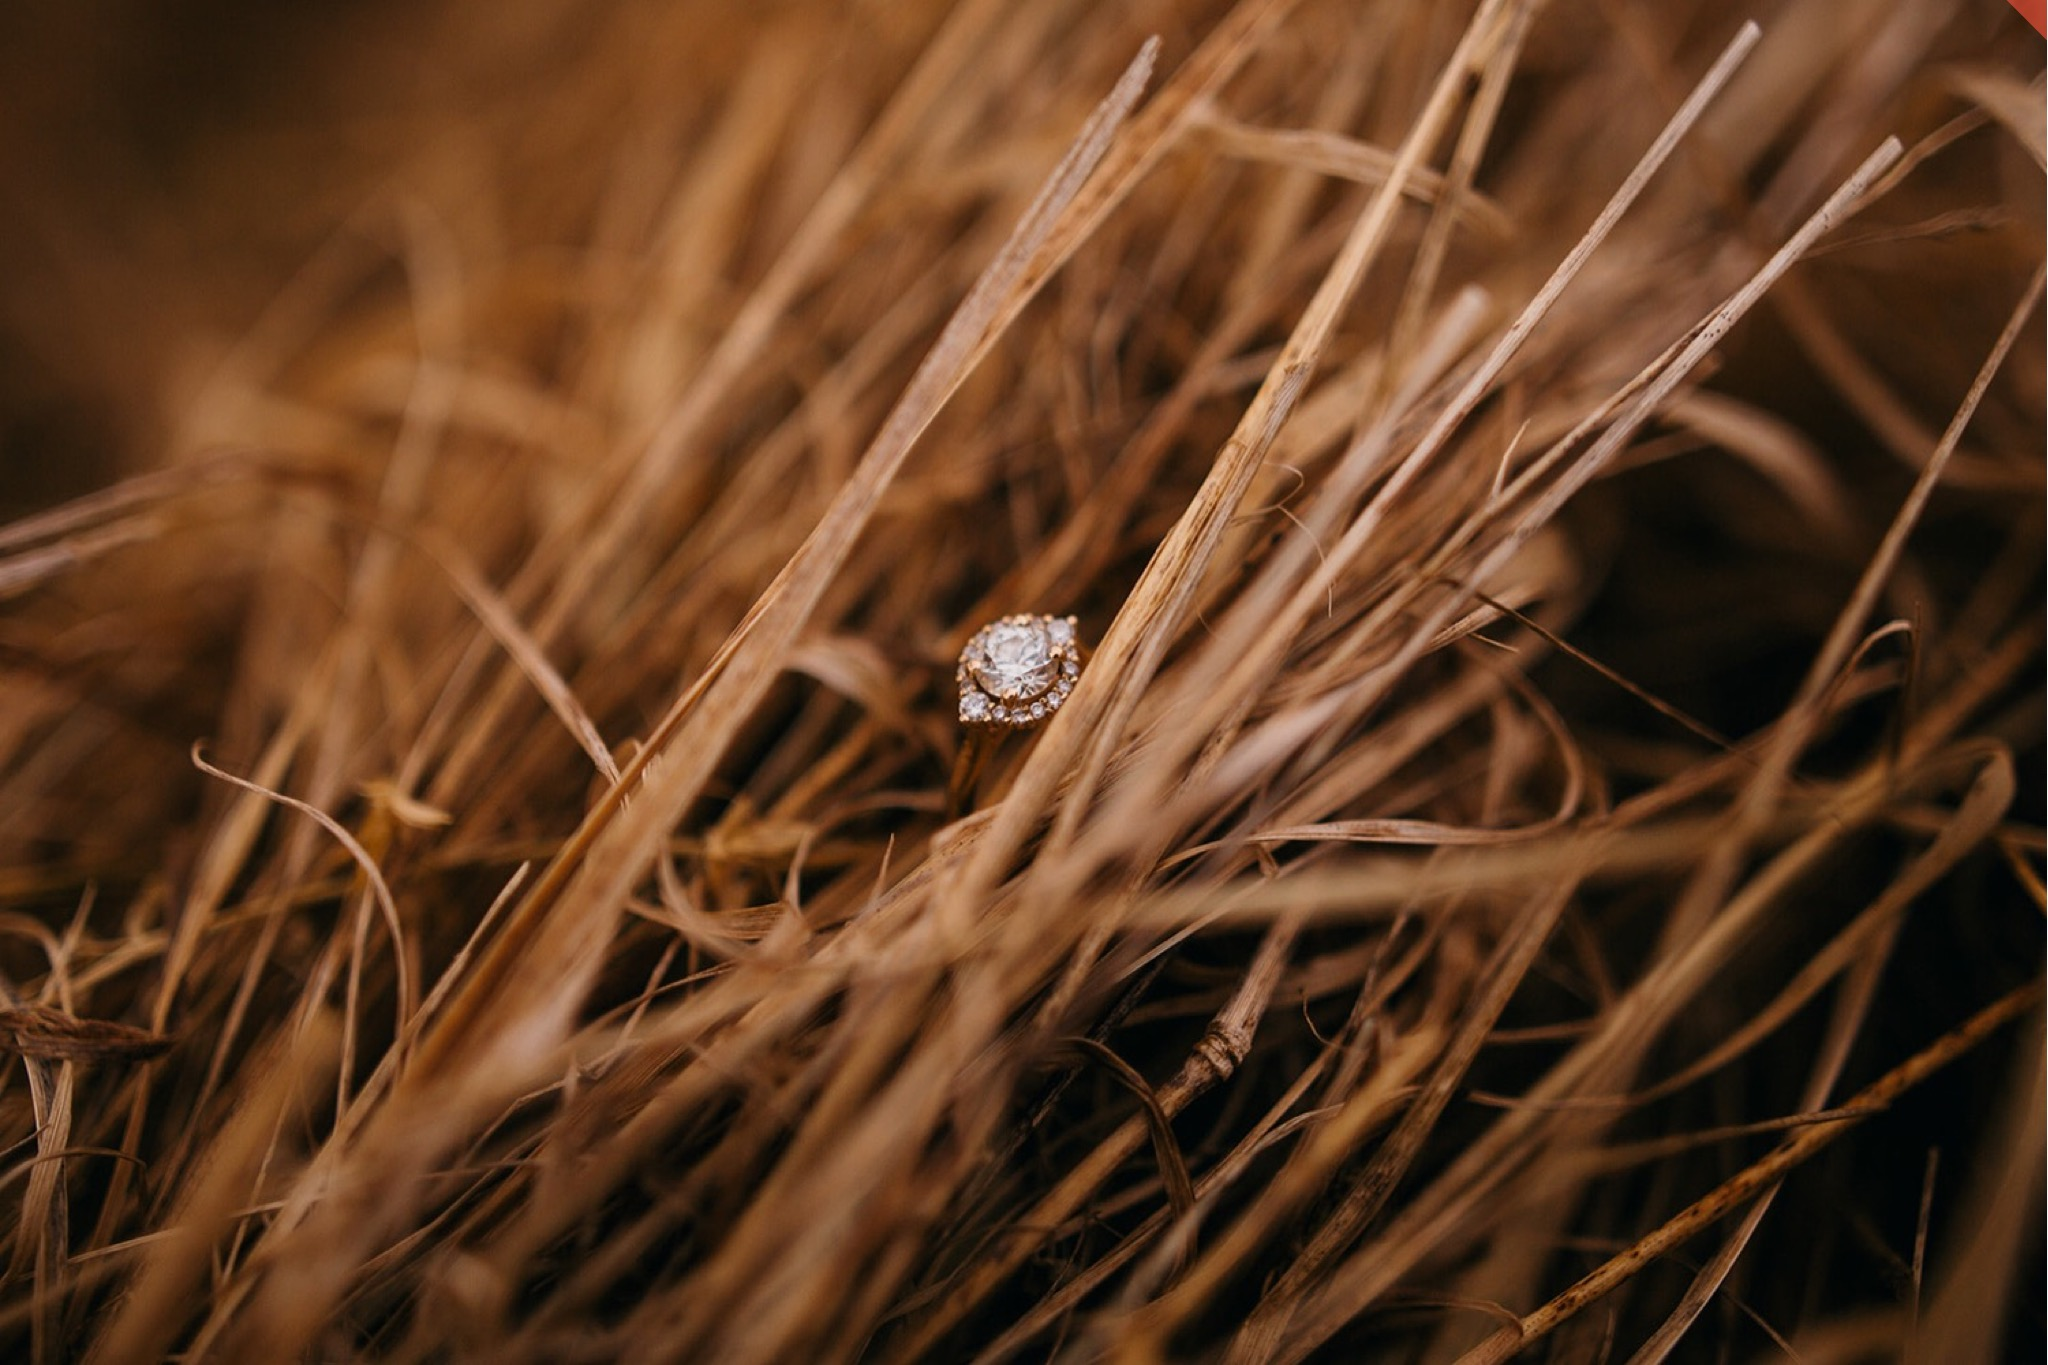 A gold and diamond engagement ring perched in dry golden grass.